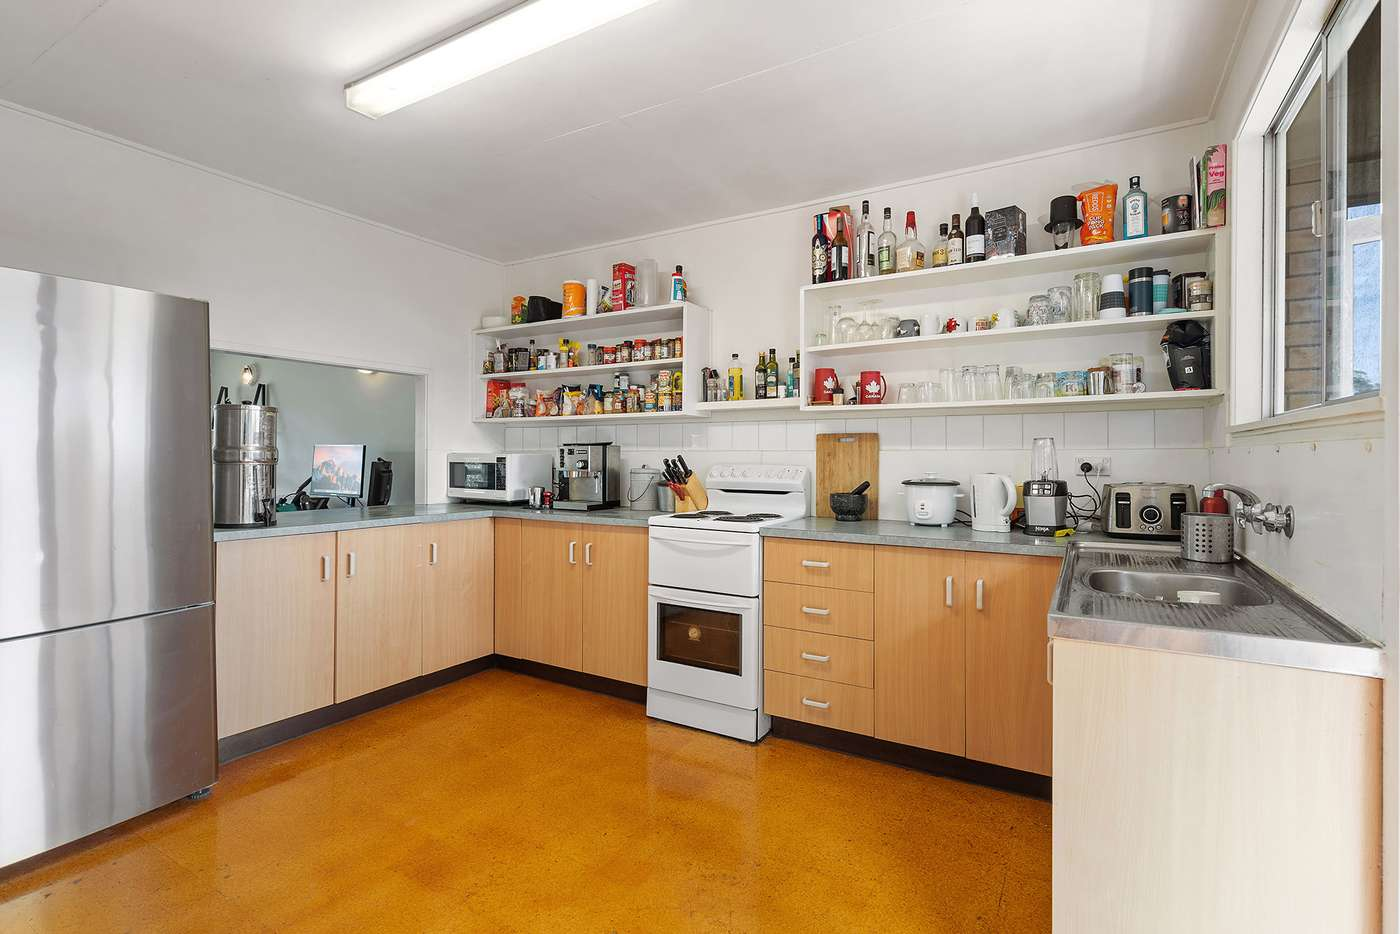 Fifth view of Homely house listing, 75 Spence Street, Mount Gravatt East QLD 4122